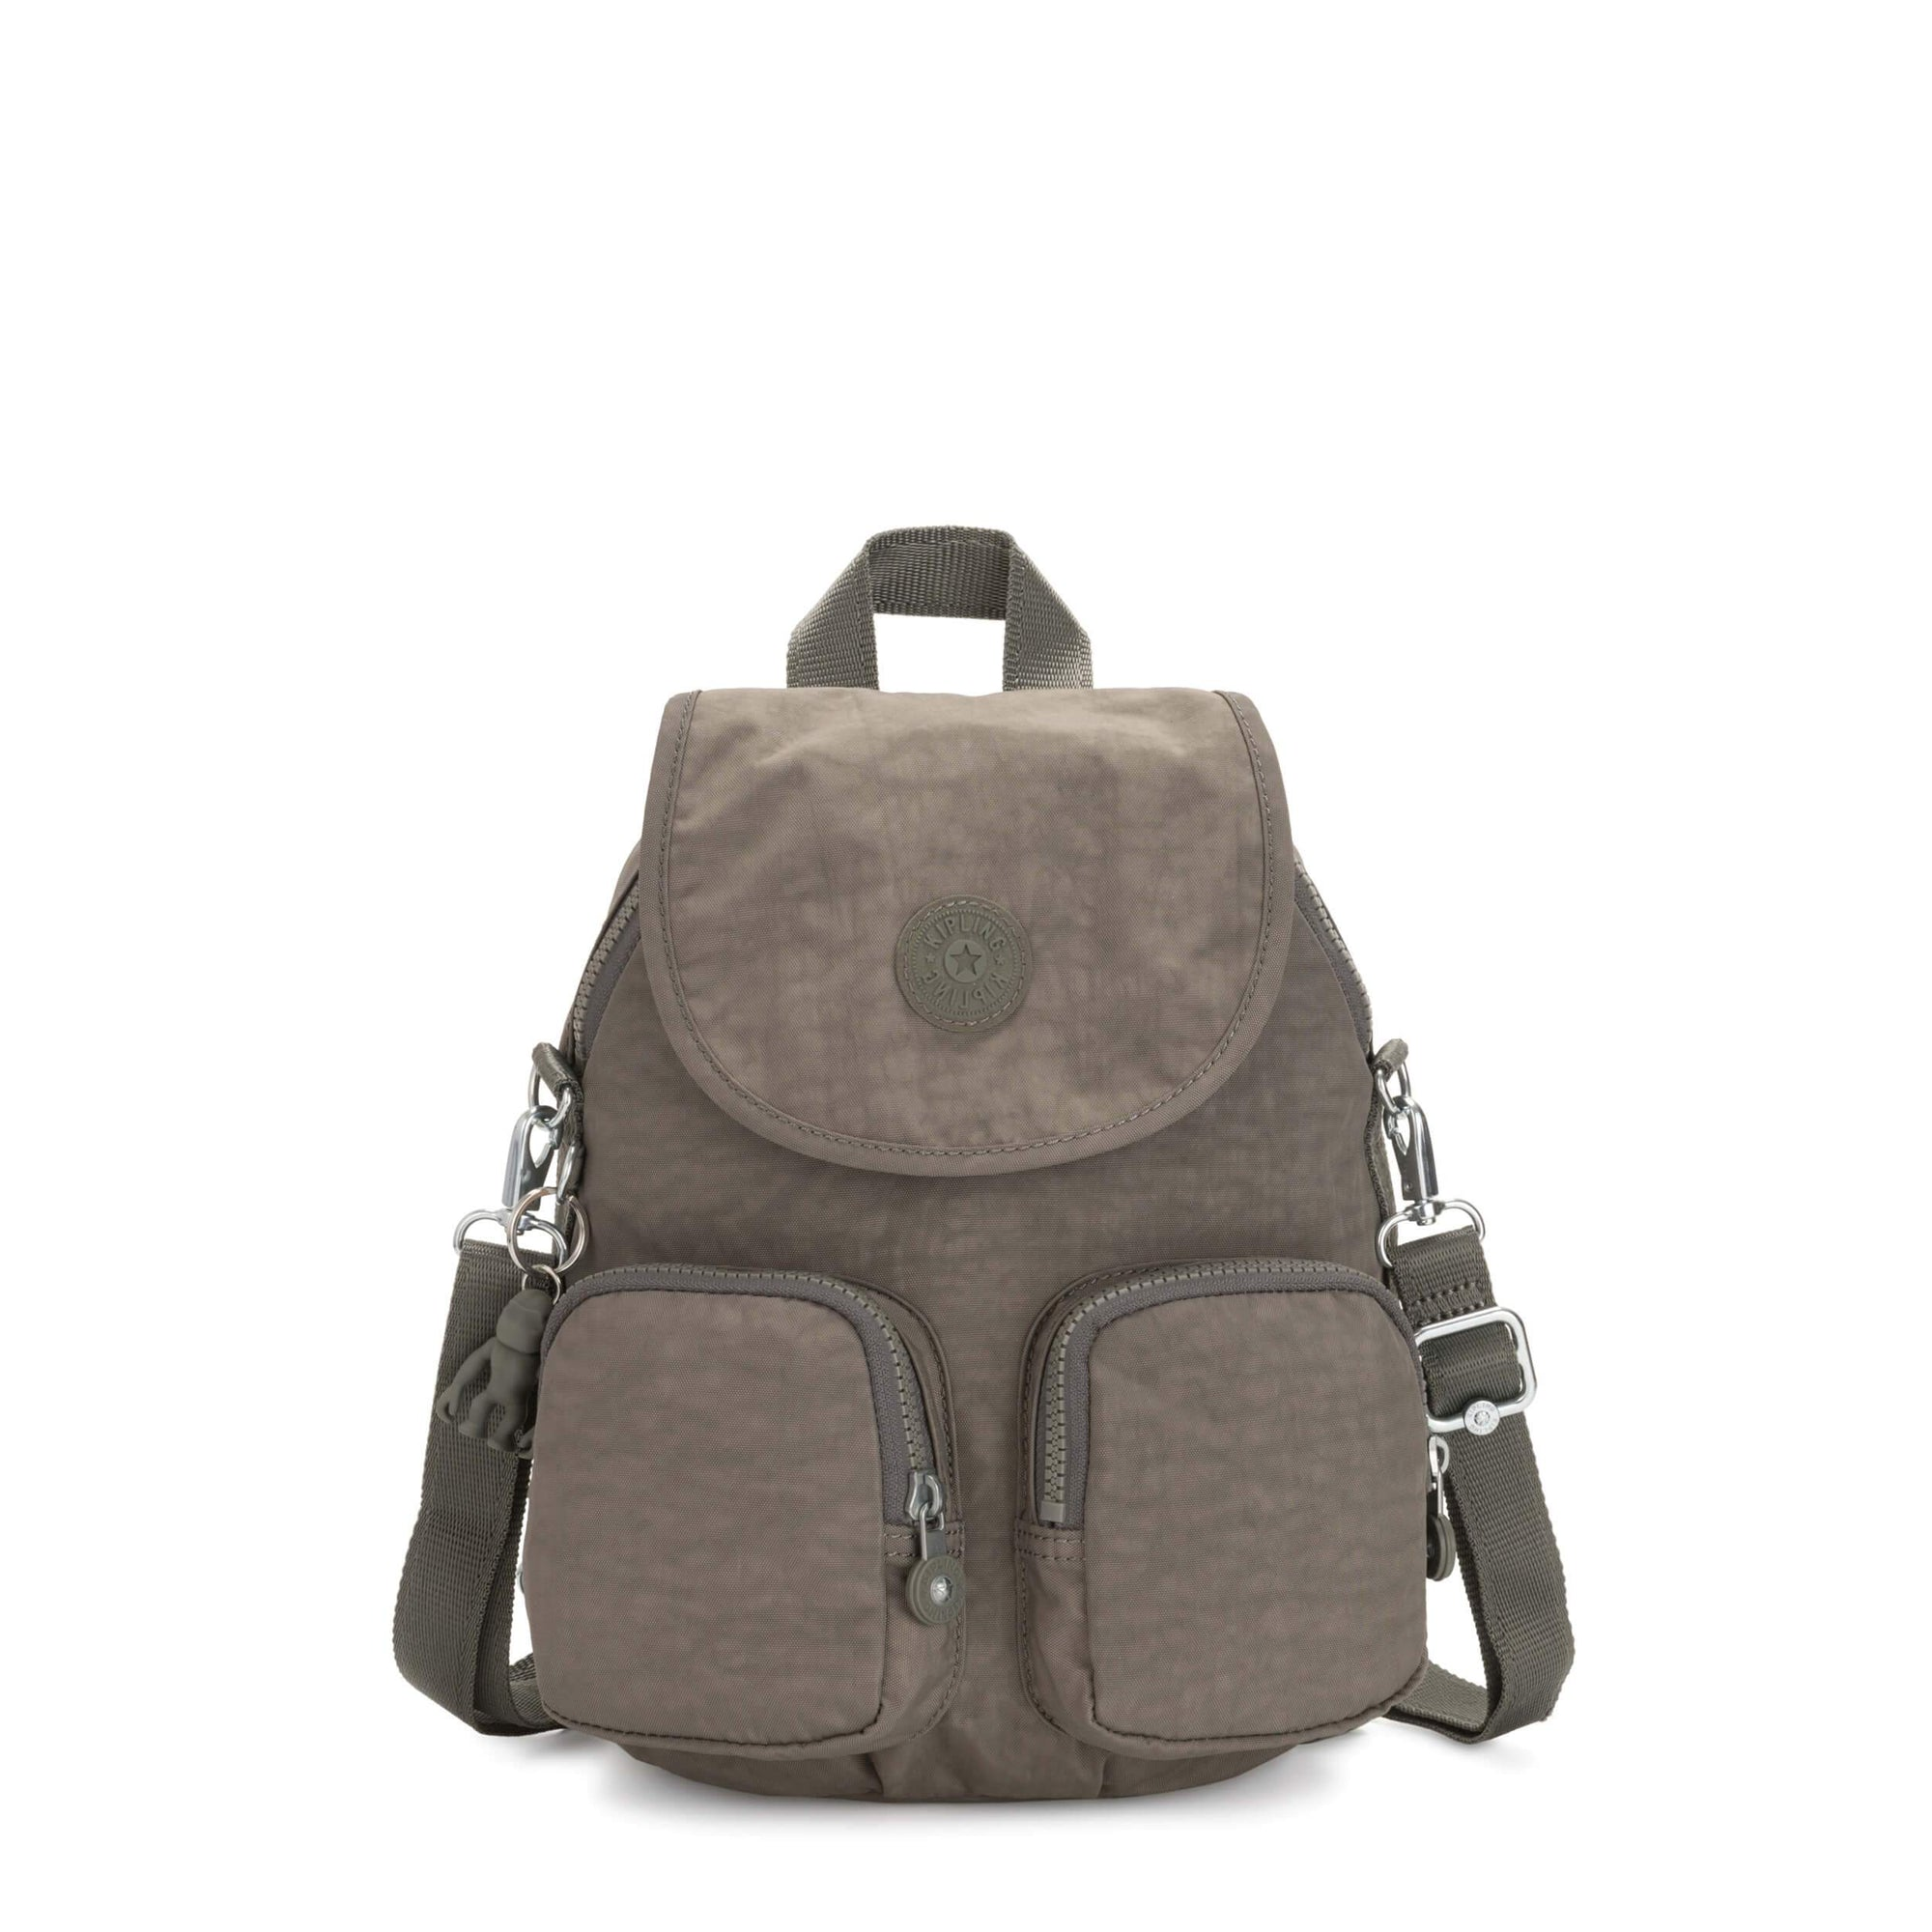 Backpack Mini Kipling Firefly Up Seagrass